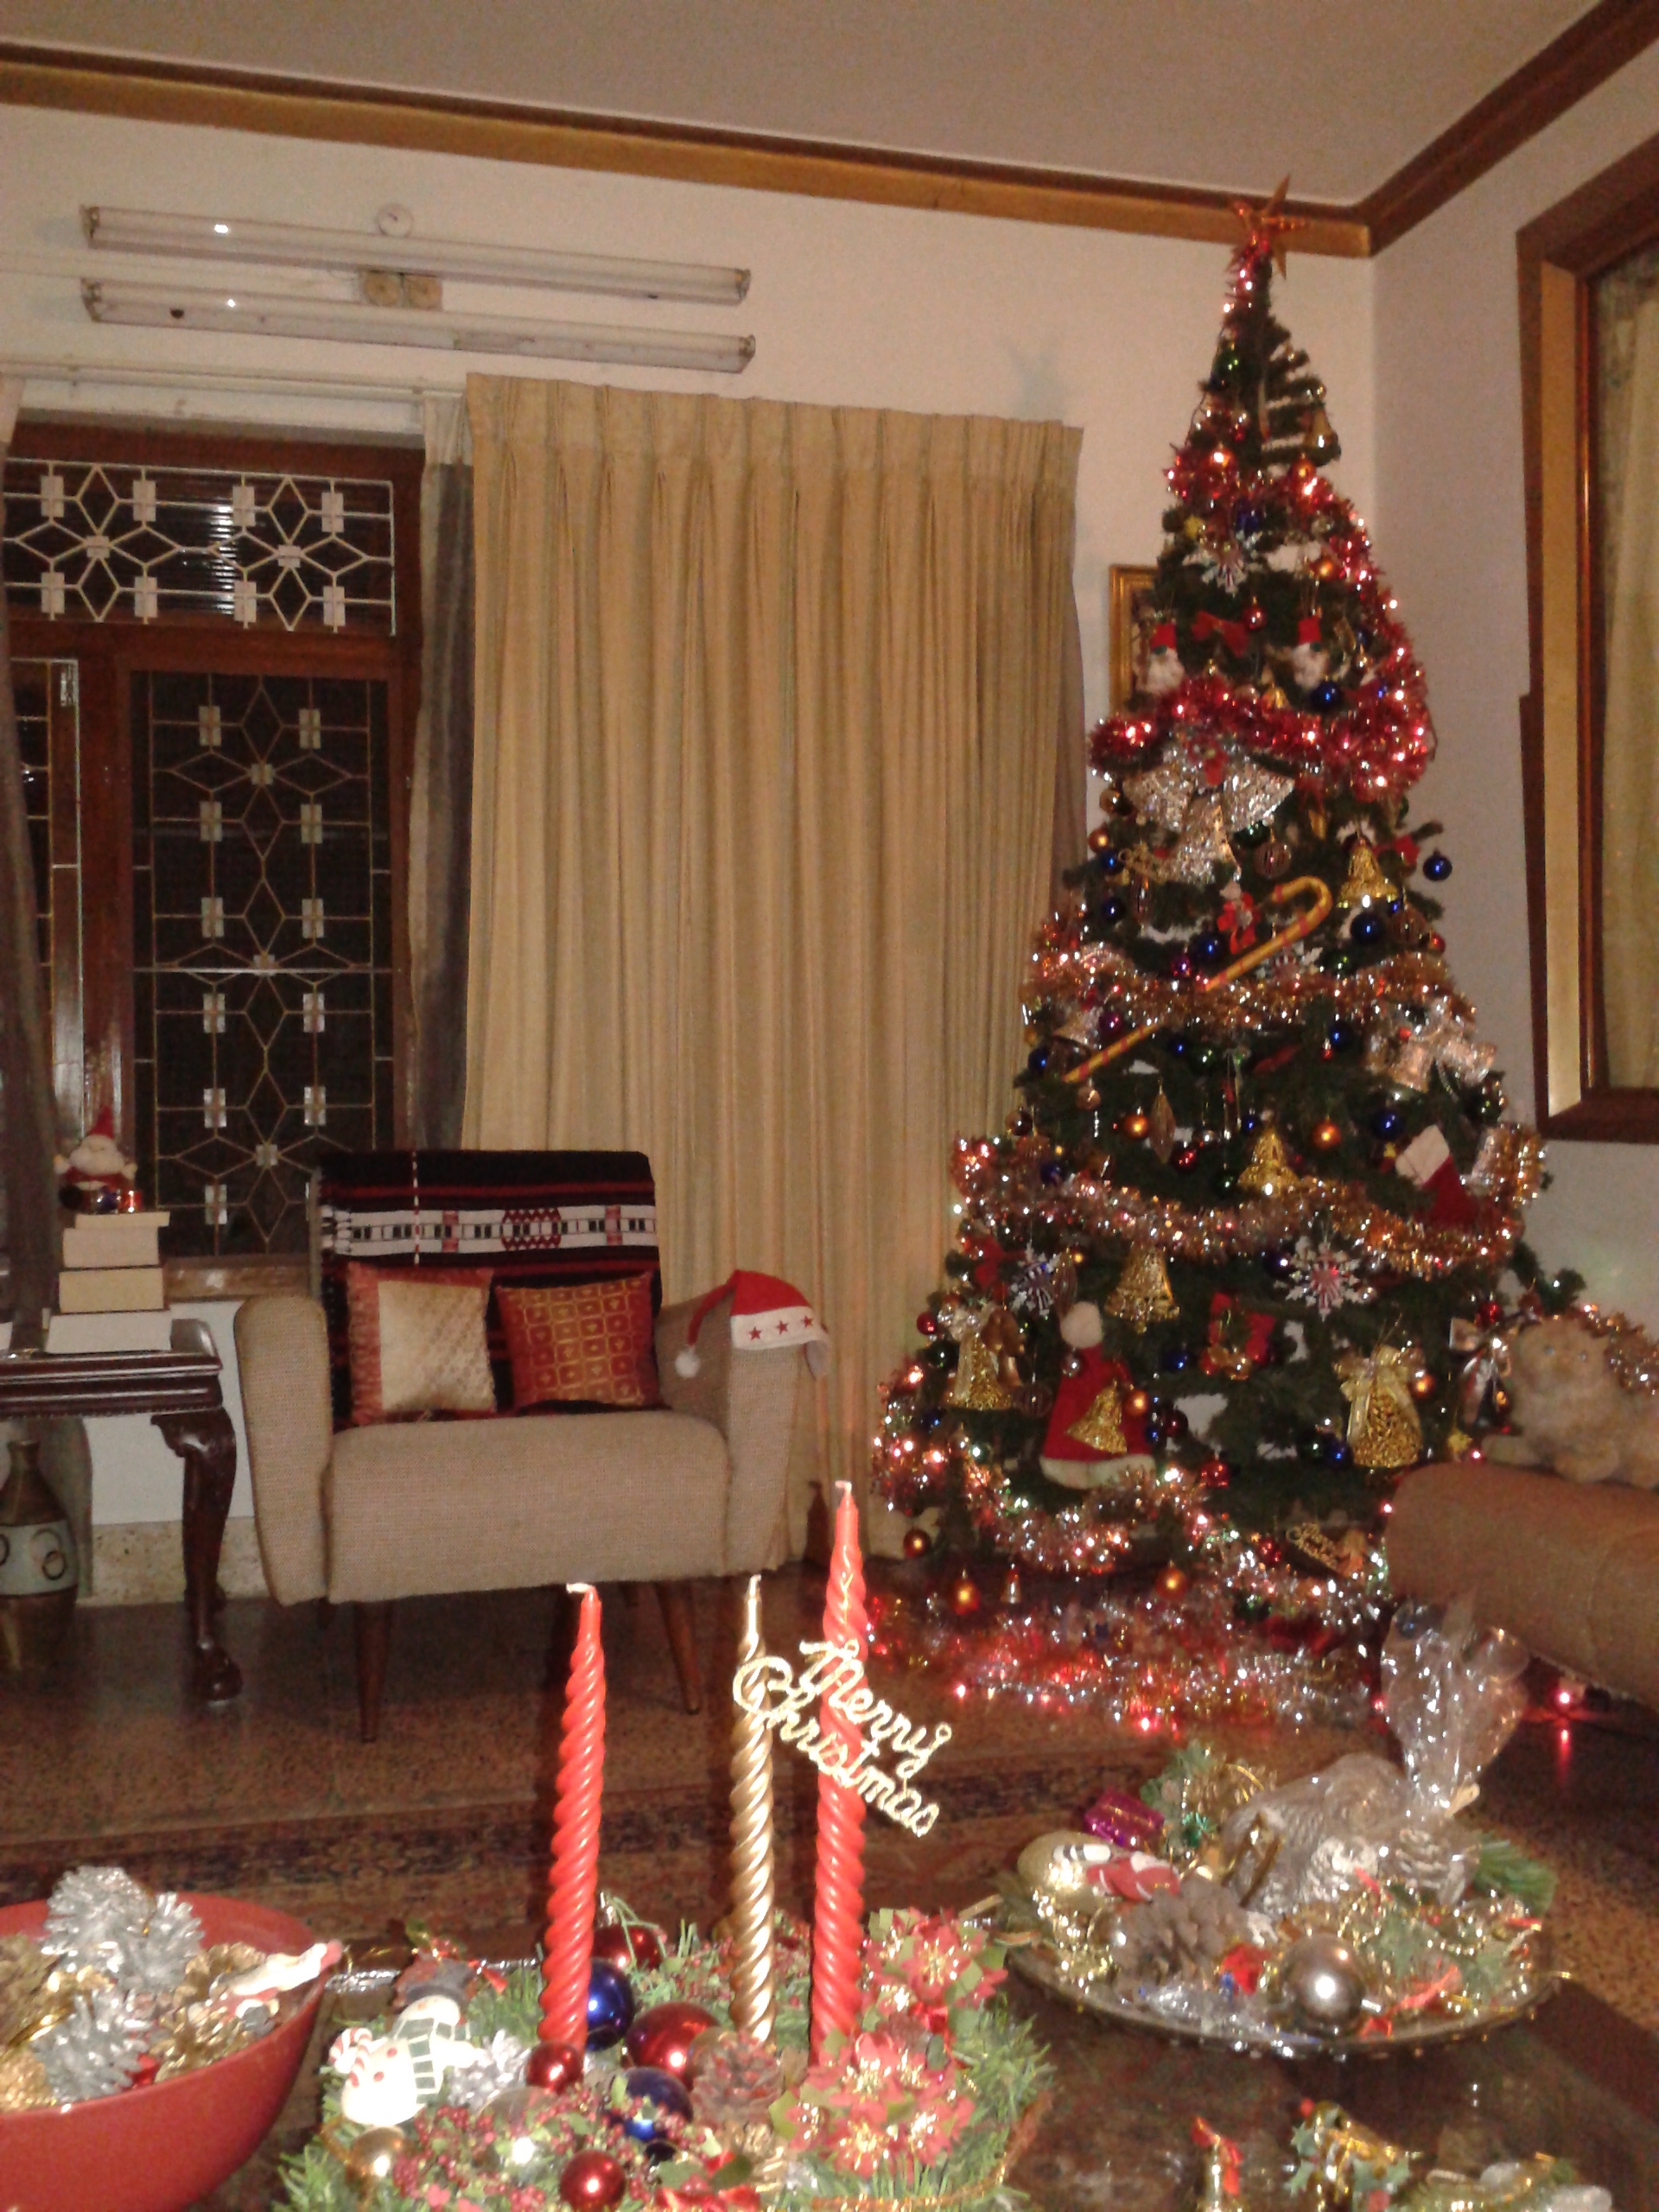 Charming Christmas Trees In India Part - 5: File:Christmas Tree In A Home Kerala, India..jpg